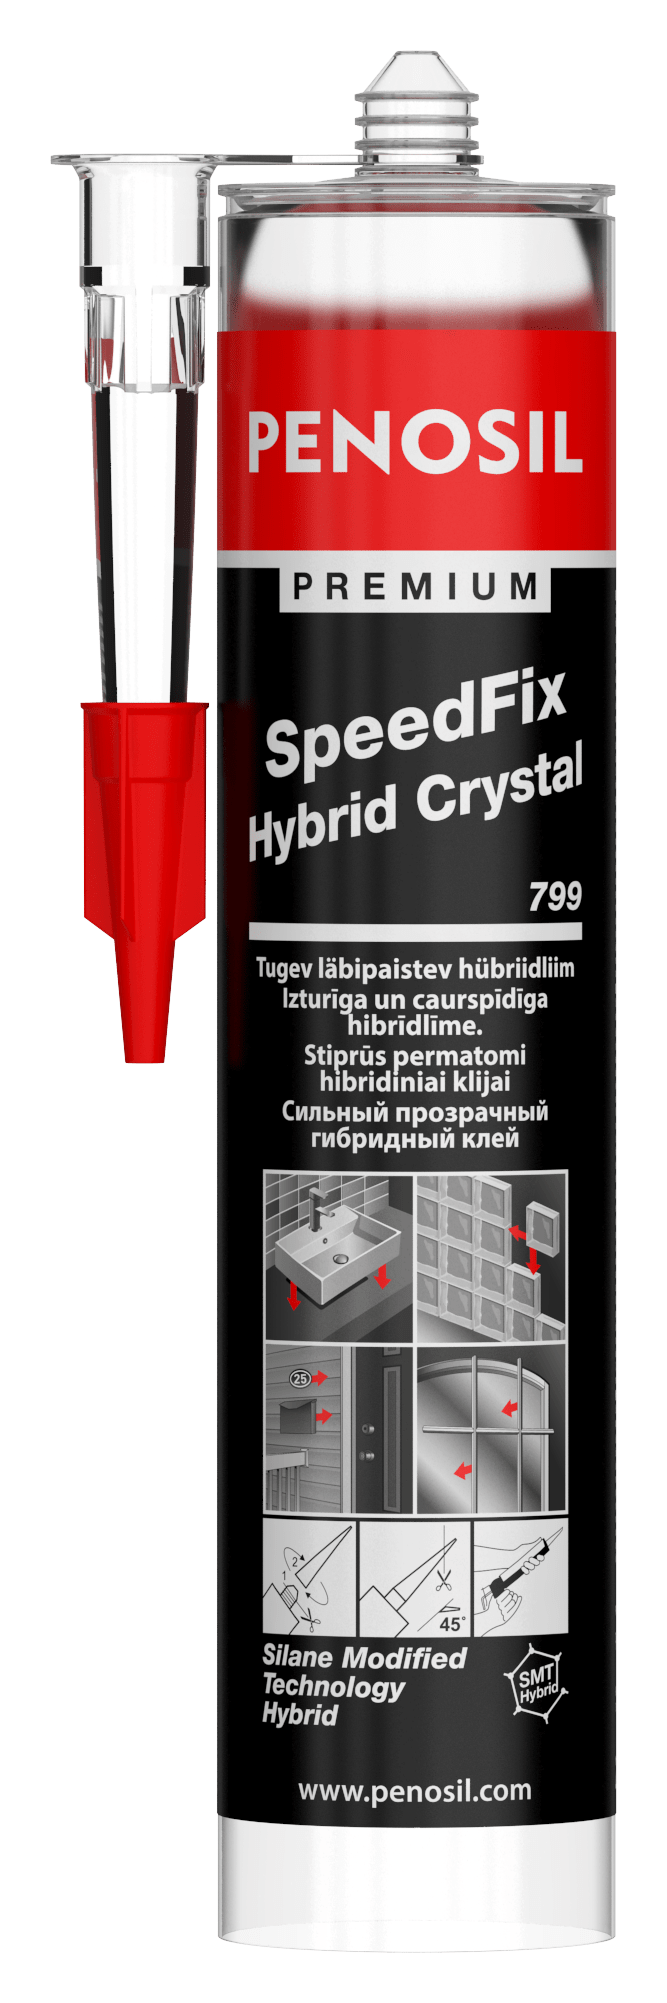 PENOSIL Premium SpeedFix Hybrid Crystal 799 multipurpose eco-friendly adhesive